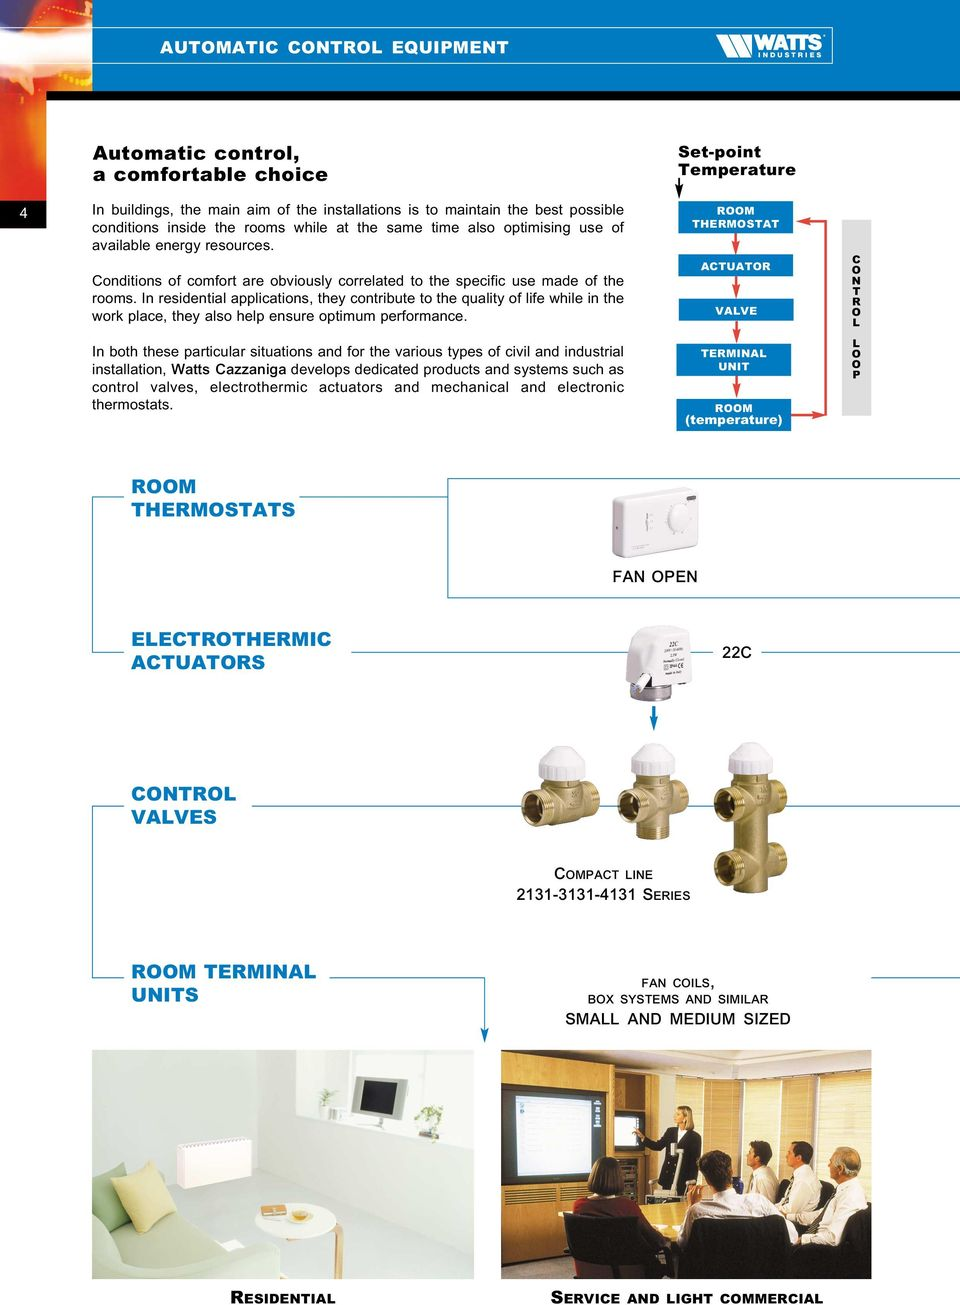 Automatic Control Equipment For Hvac Systems Pdf Wiring Including The Power Inside Coilsbox My Term In Residential Applications They Contribute To Quality Of Life While Work Place